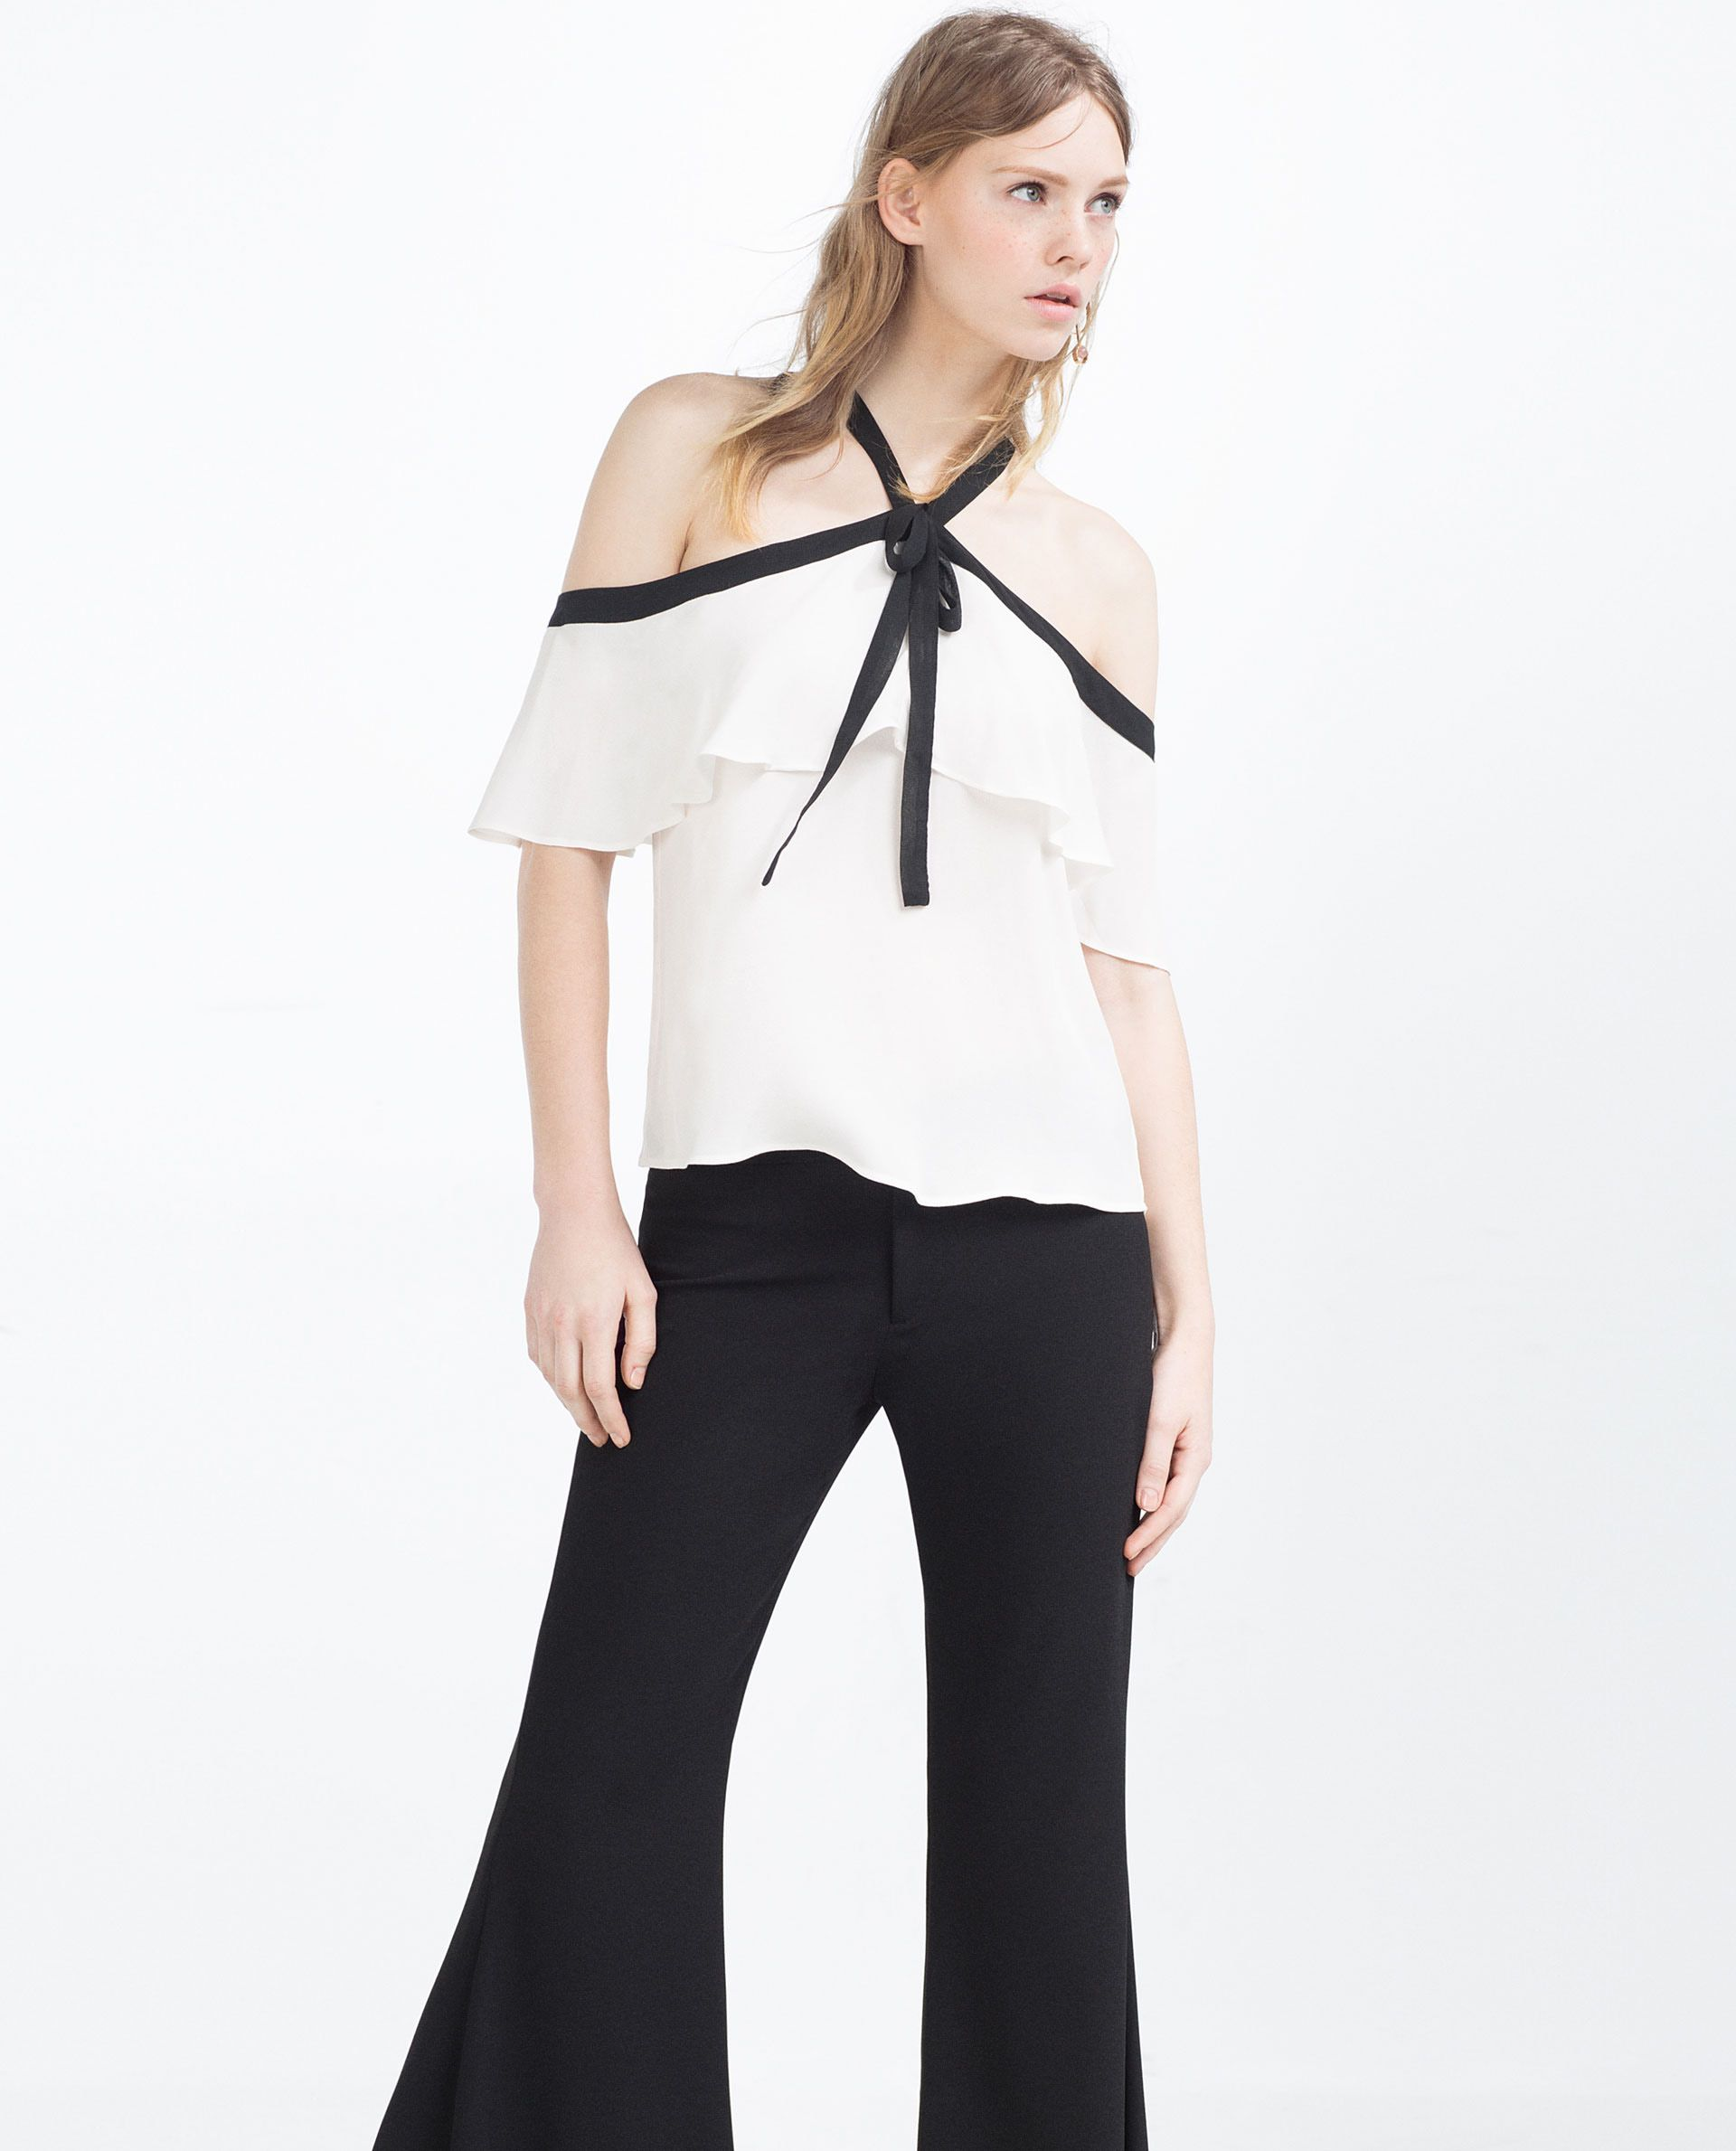 c03d955c5fdf3 Zara takes on Proenza Schouler off-the-shoulder pussy-bow frilled ...